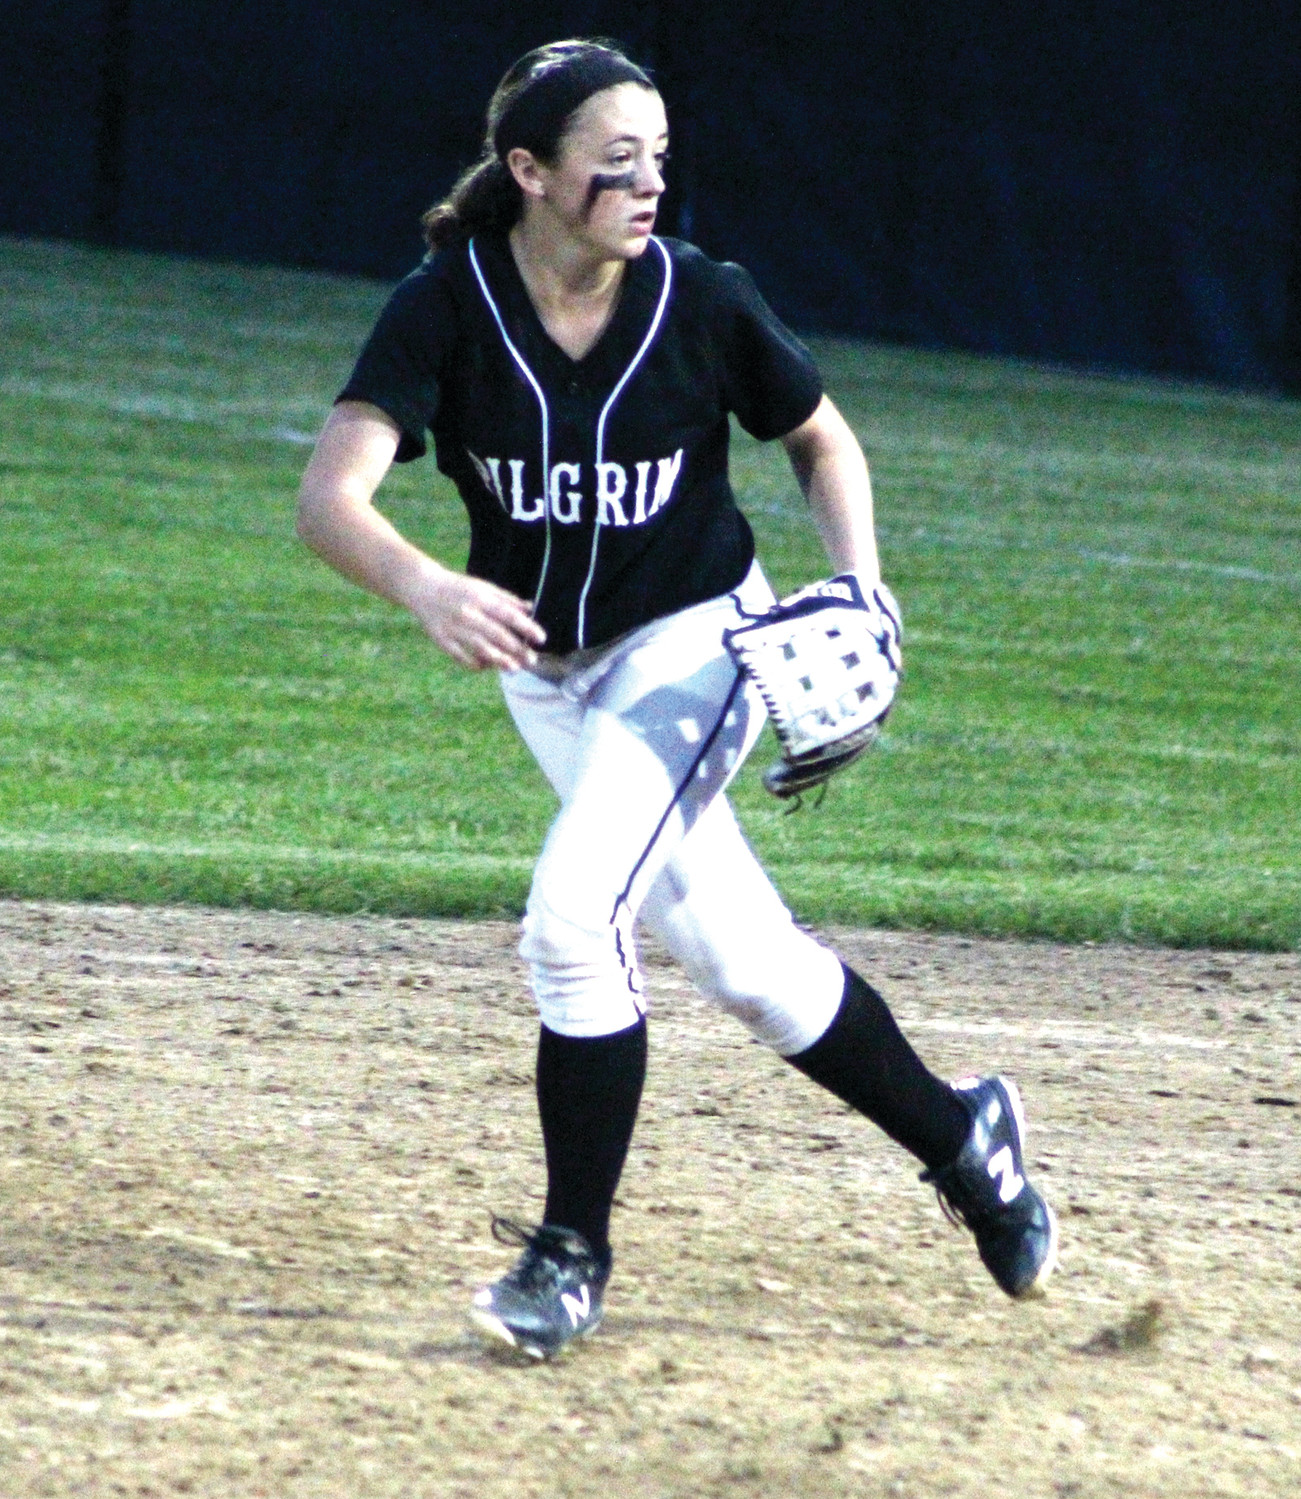 Pilgrim's Madi D'Amato looks to make a play at second base for the Patriots.